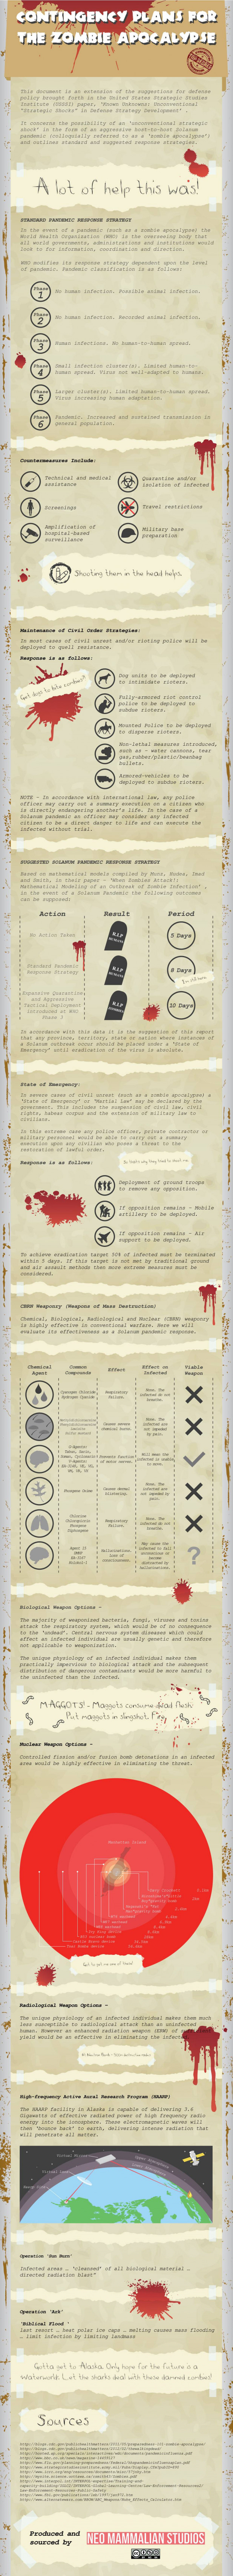 Contingency Plans for the Zombie Apocalypse